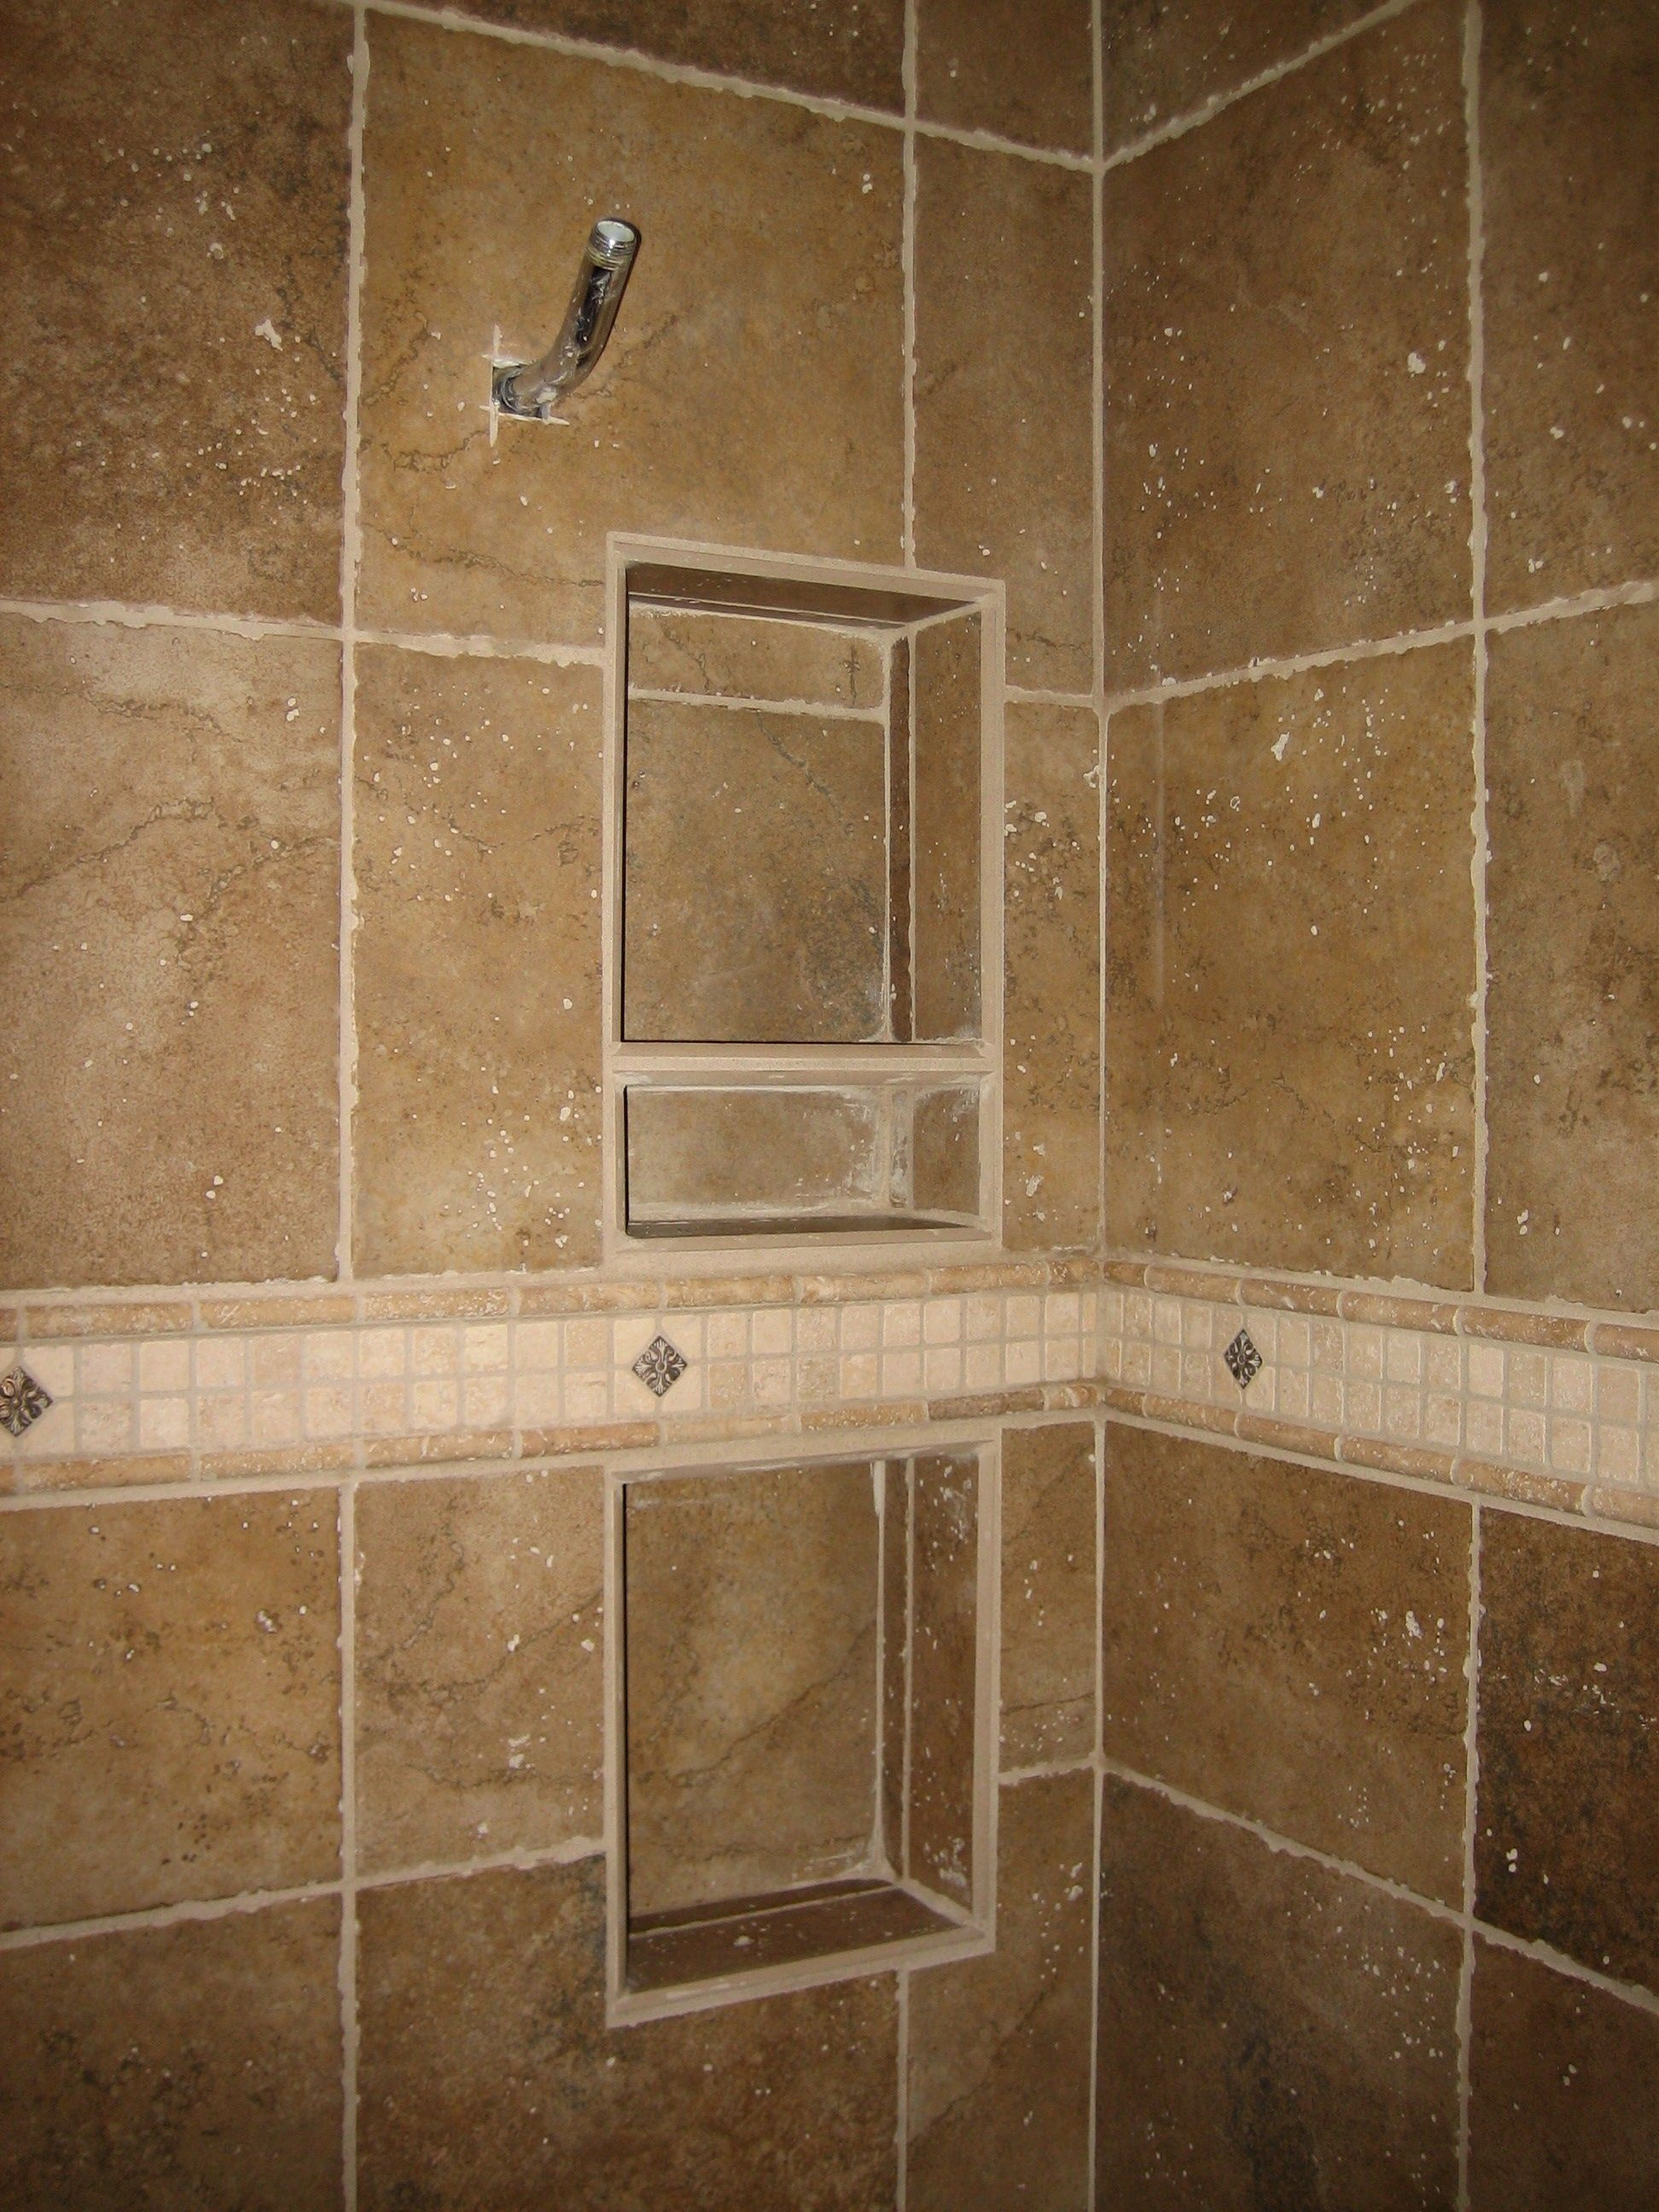 Shower Recessed Tiled Shelving And Specialty Band Shower